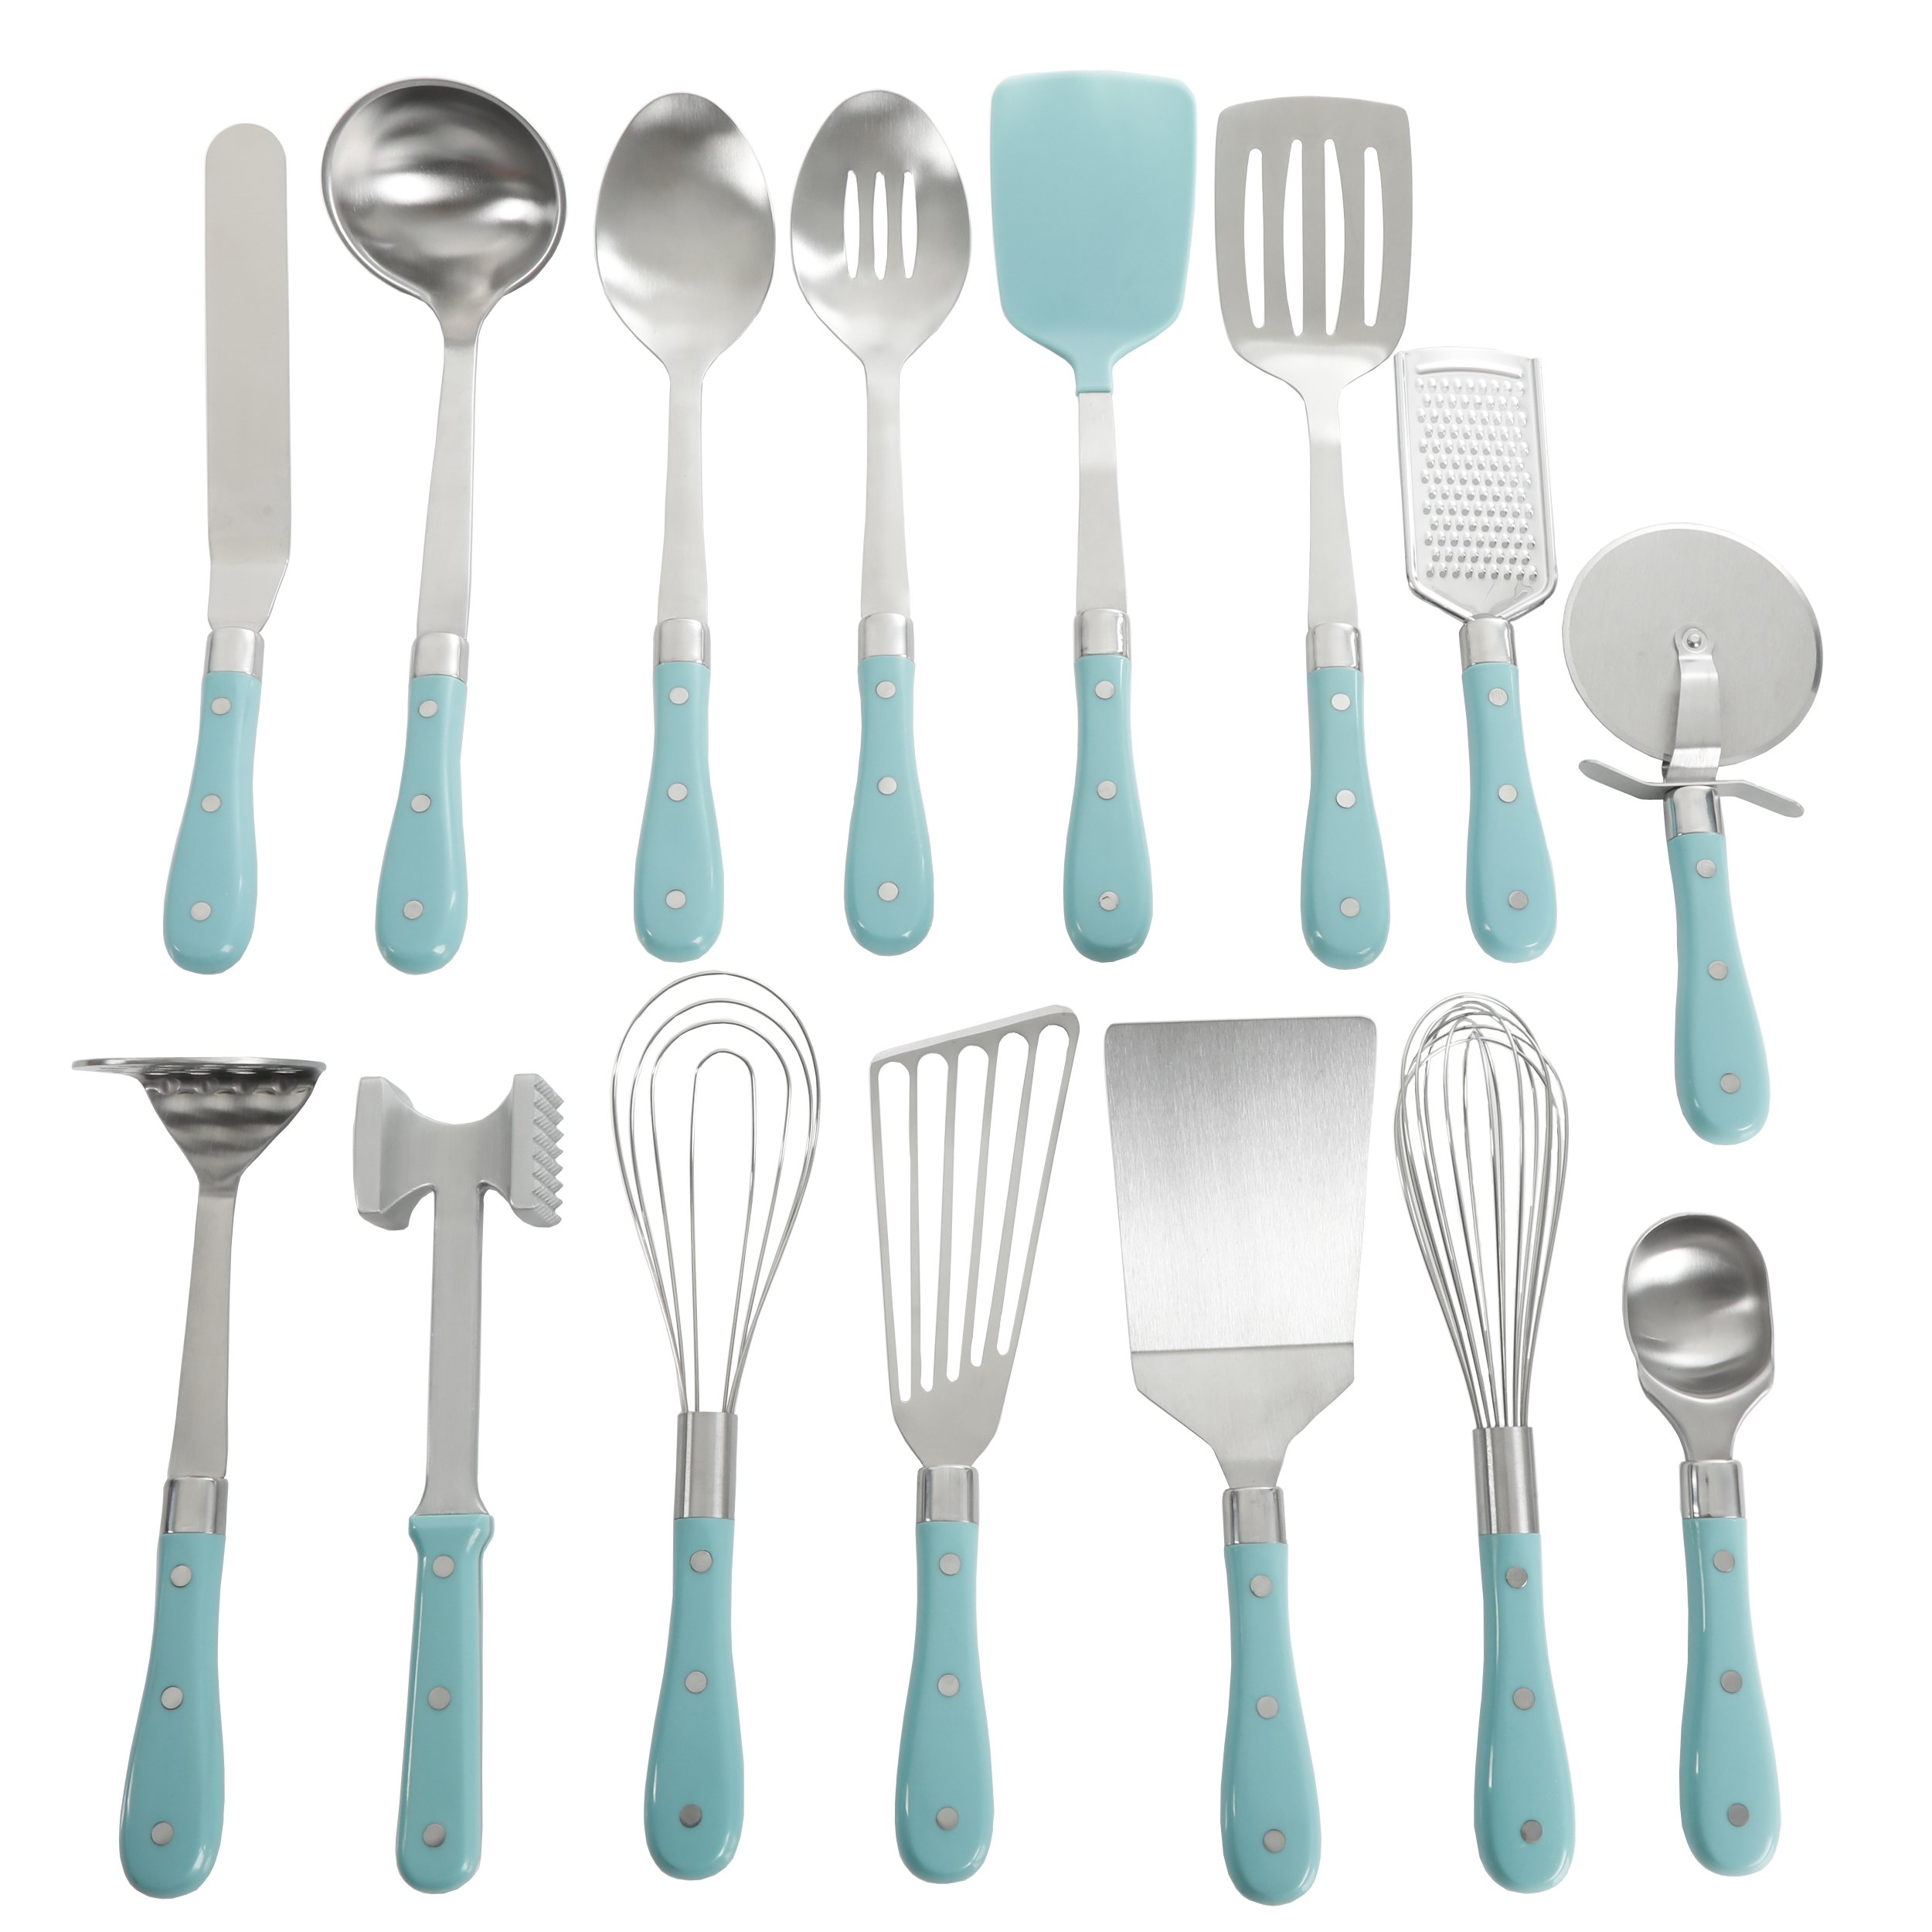 Frontier Collection 15-Piece All In One Tool And Gadget Set In Turquoise, Made of Stainless Steel, Nylon and Riveted ABS Handles, Dishwasher Safe by The Pioneer Woman*